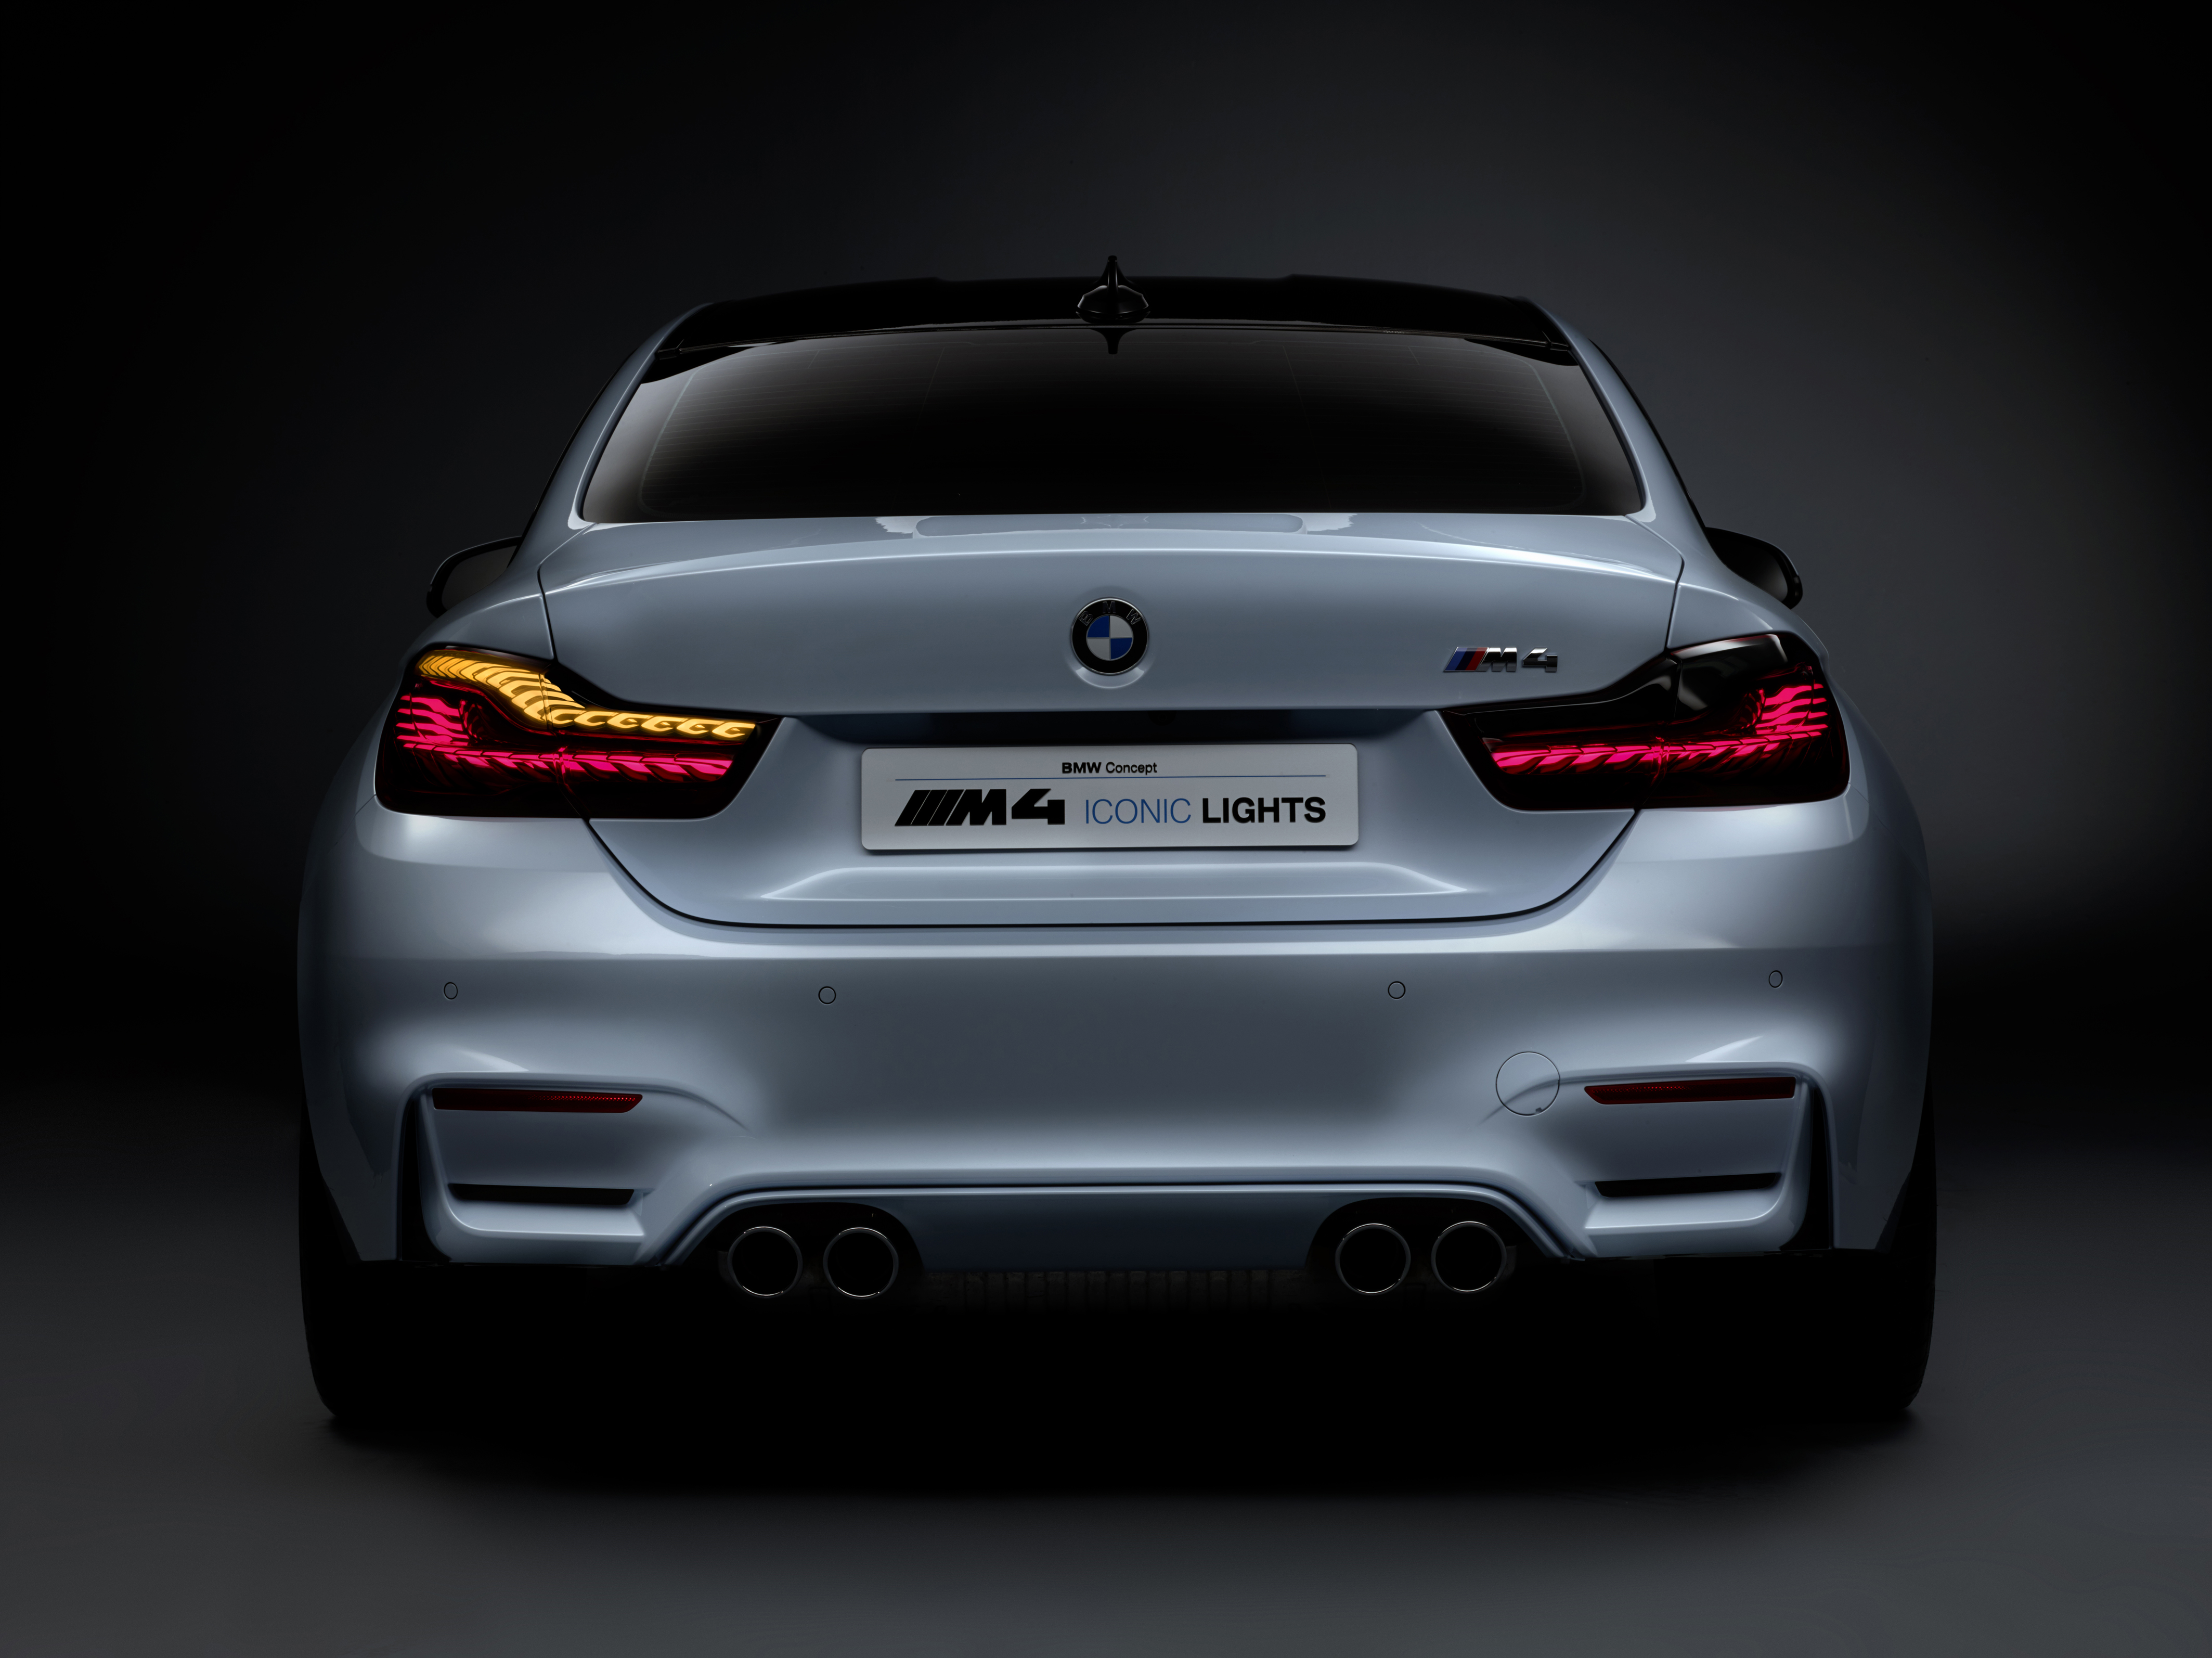 Ces 2015 Bmw M4 Concept Iconic Lights Showcases Laser And Oled Technology For Automotive